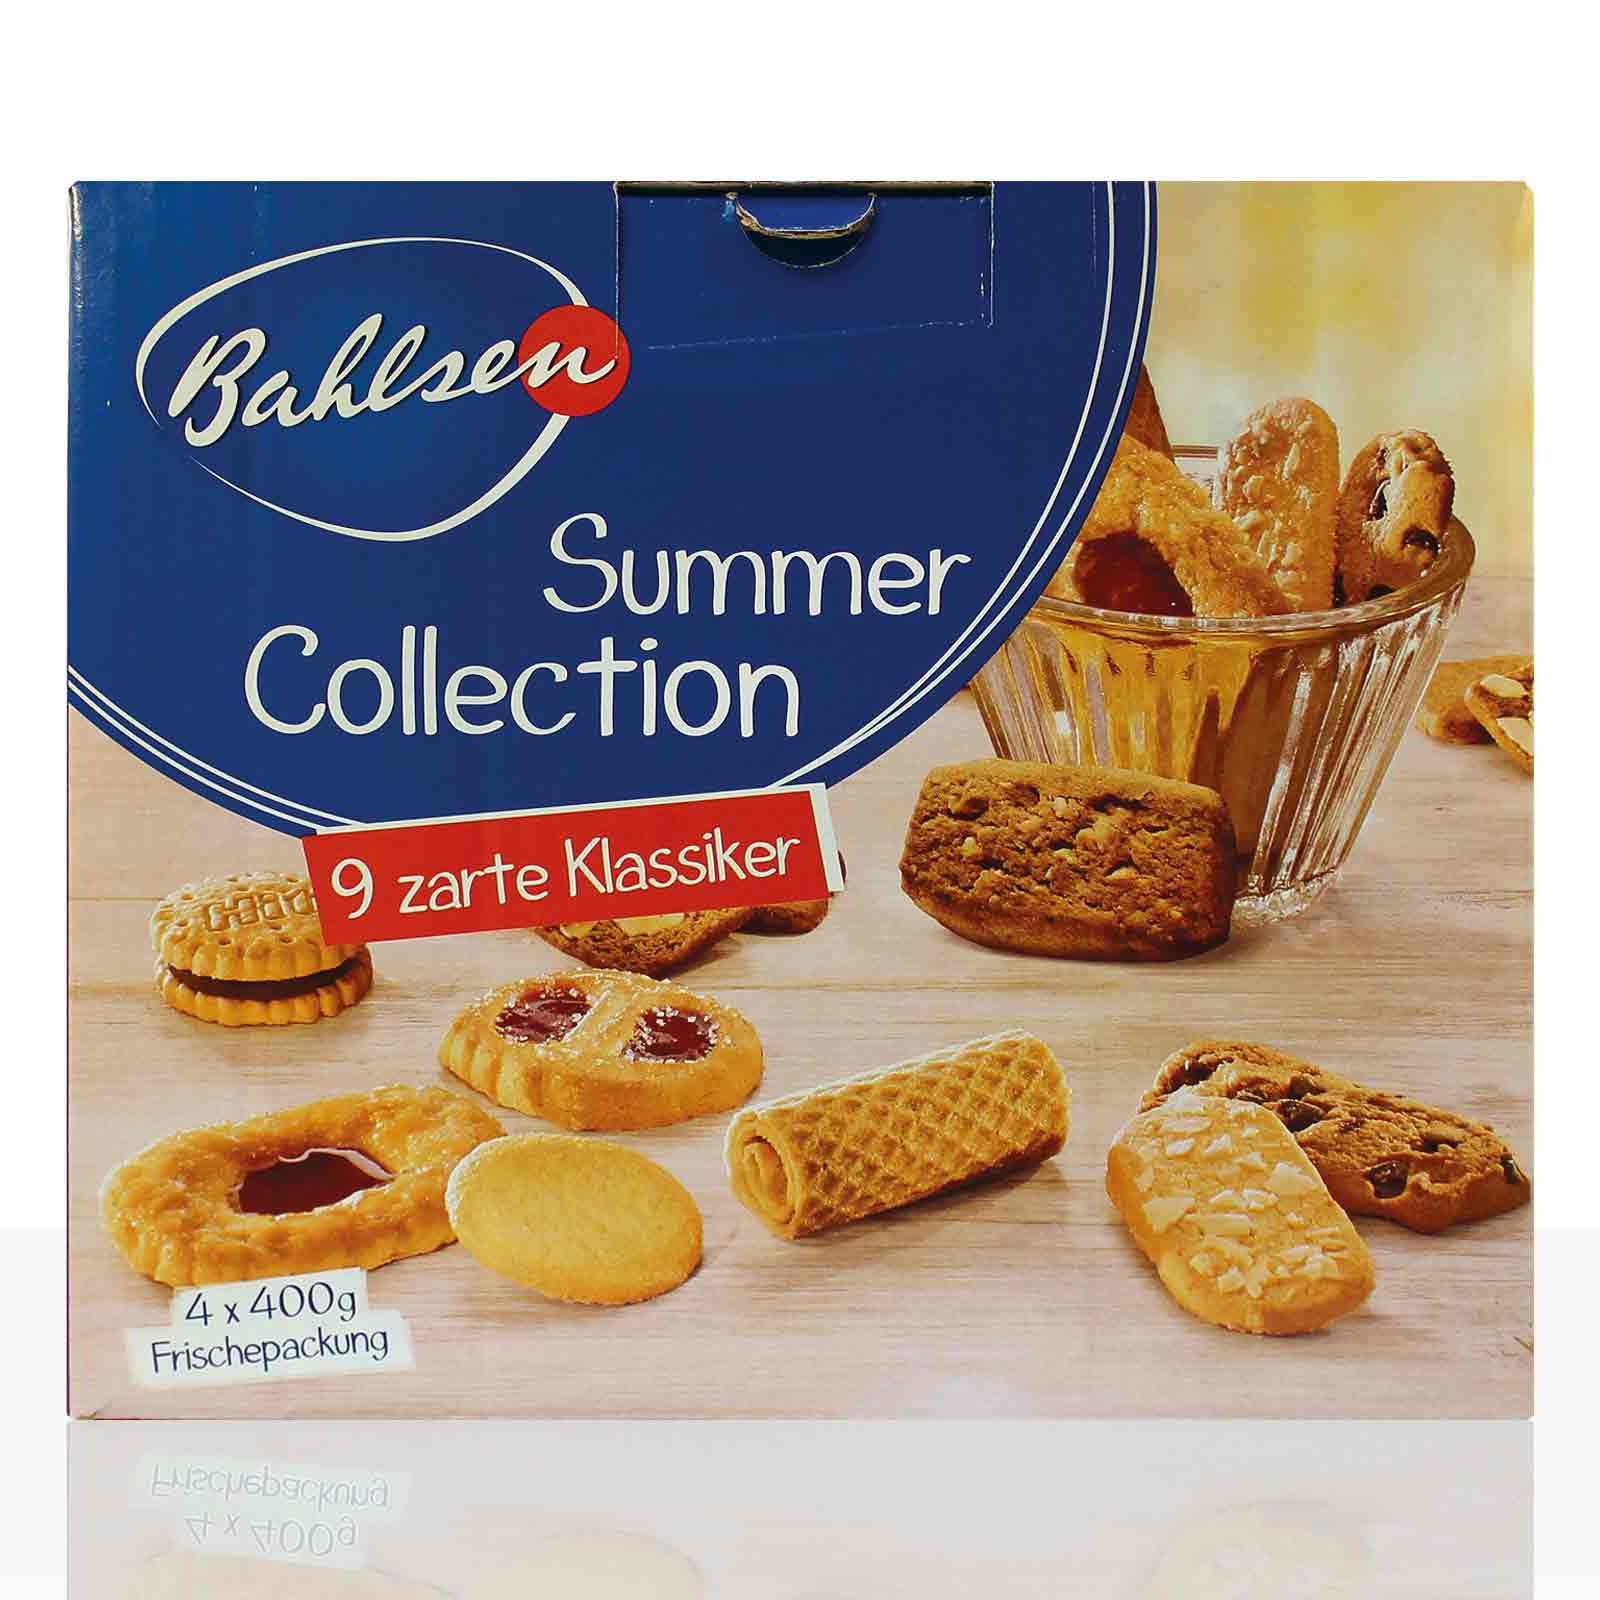 Bahlsen Summer Collection Gebäck-Mix 4 x 400g Serviersets mit 9 Sorten